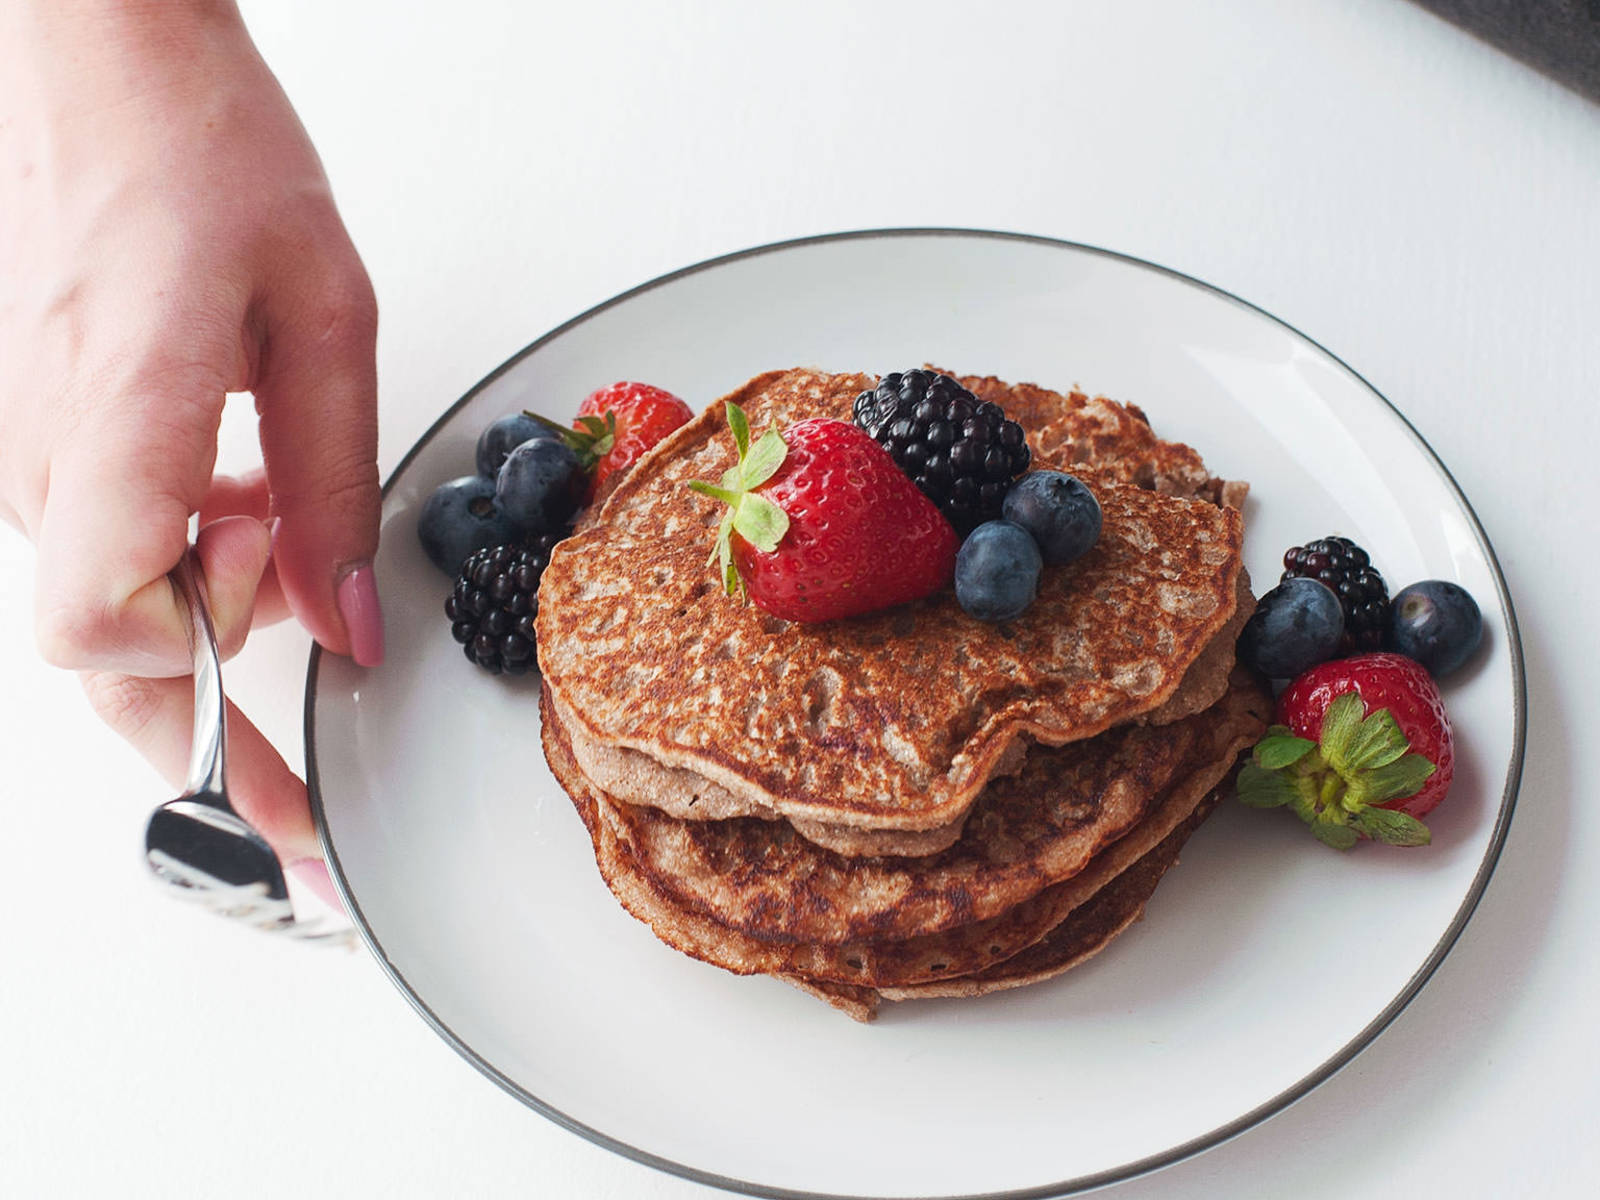 Wholesome pancakes